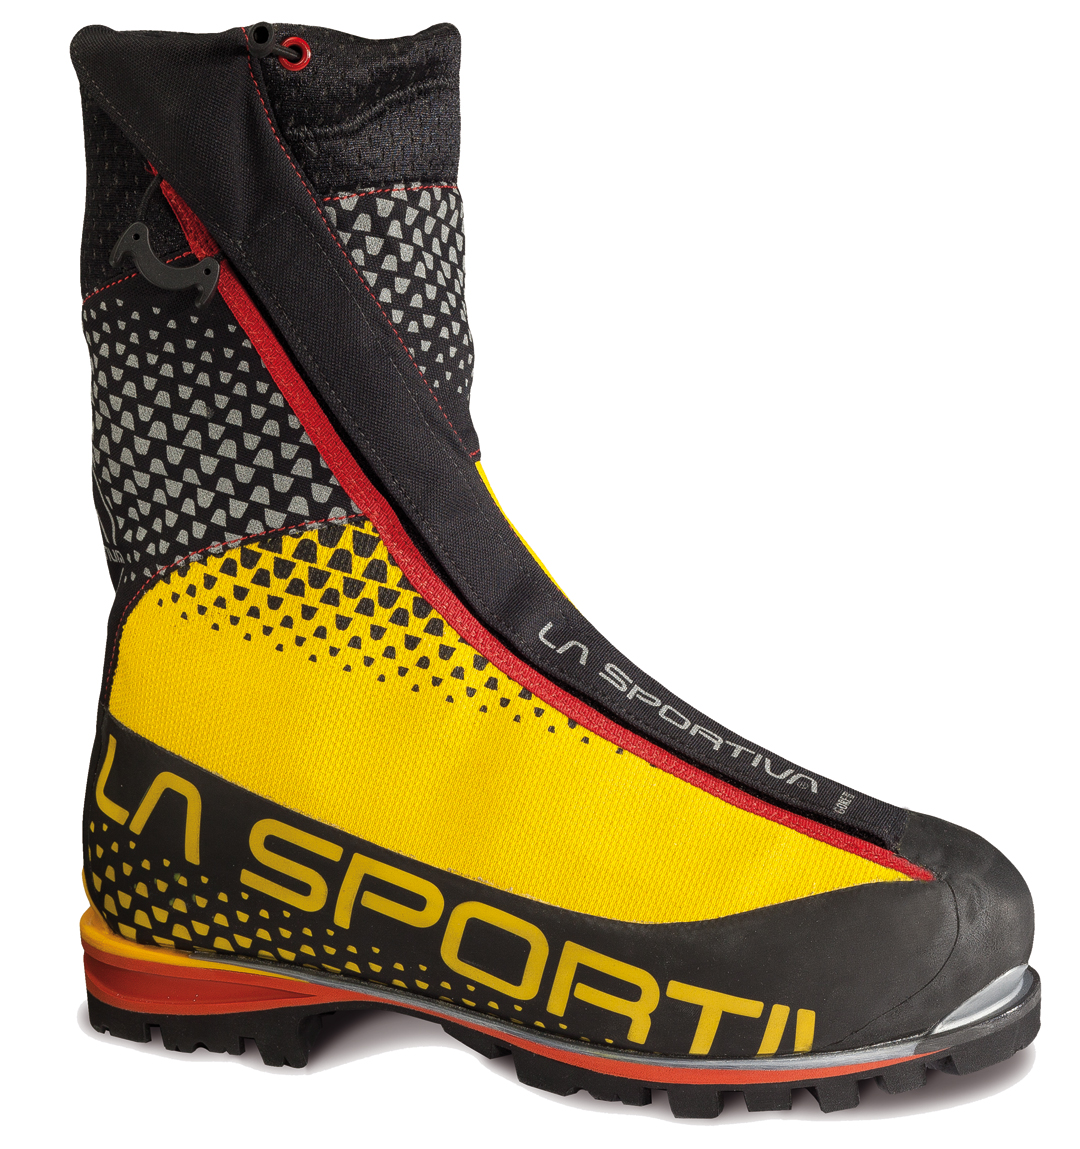 La Sportiva's new Batura 2.0 GTX mountain boot.